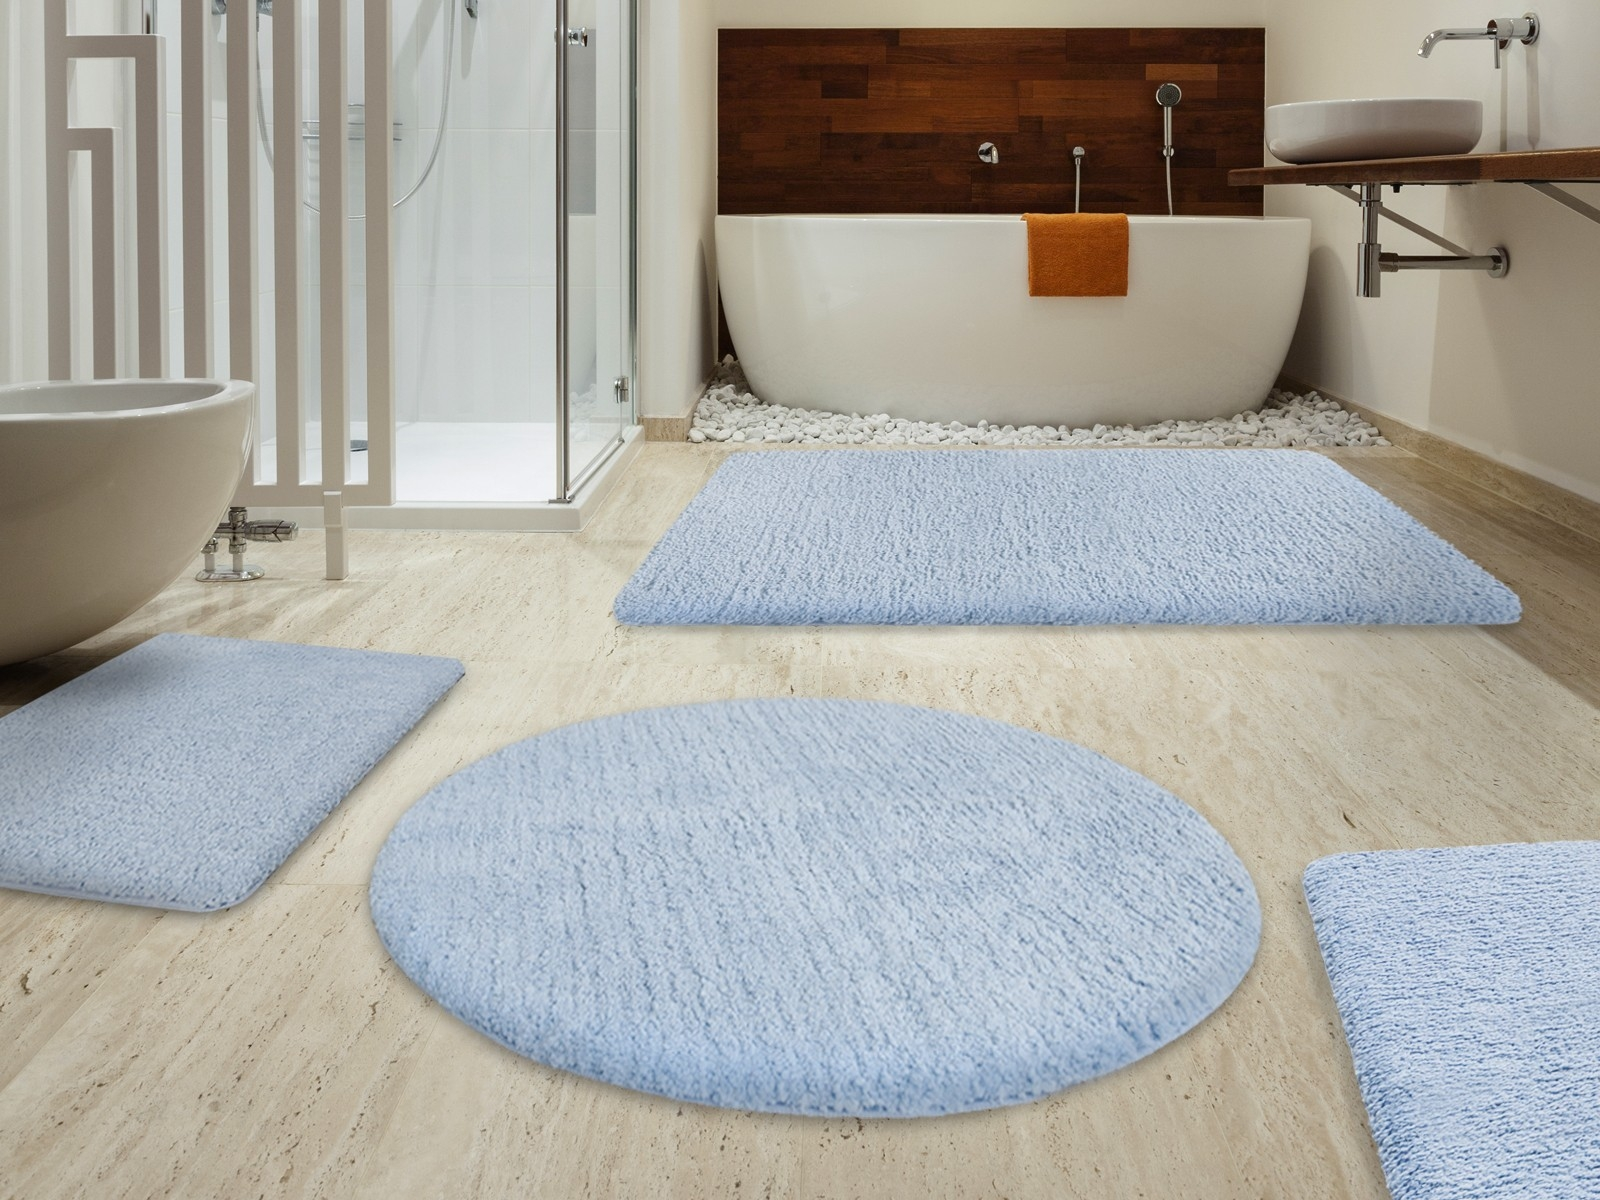 Permalink to Extra Large Round Bath Rugs